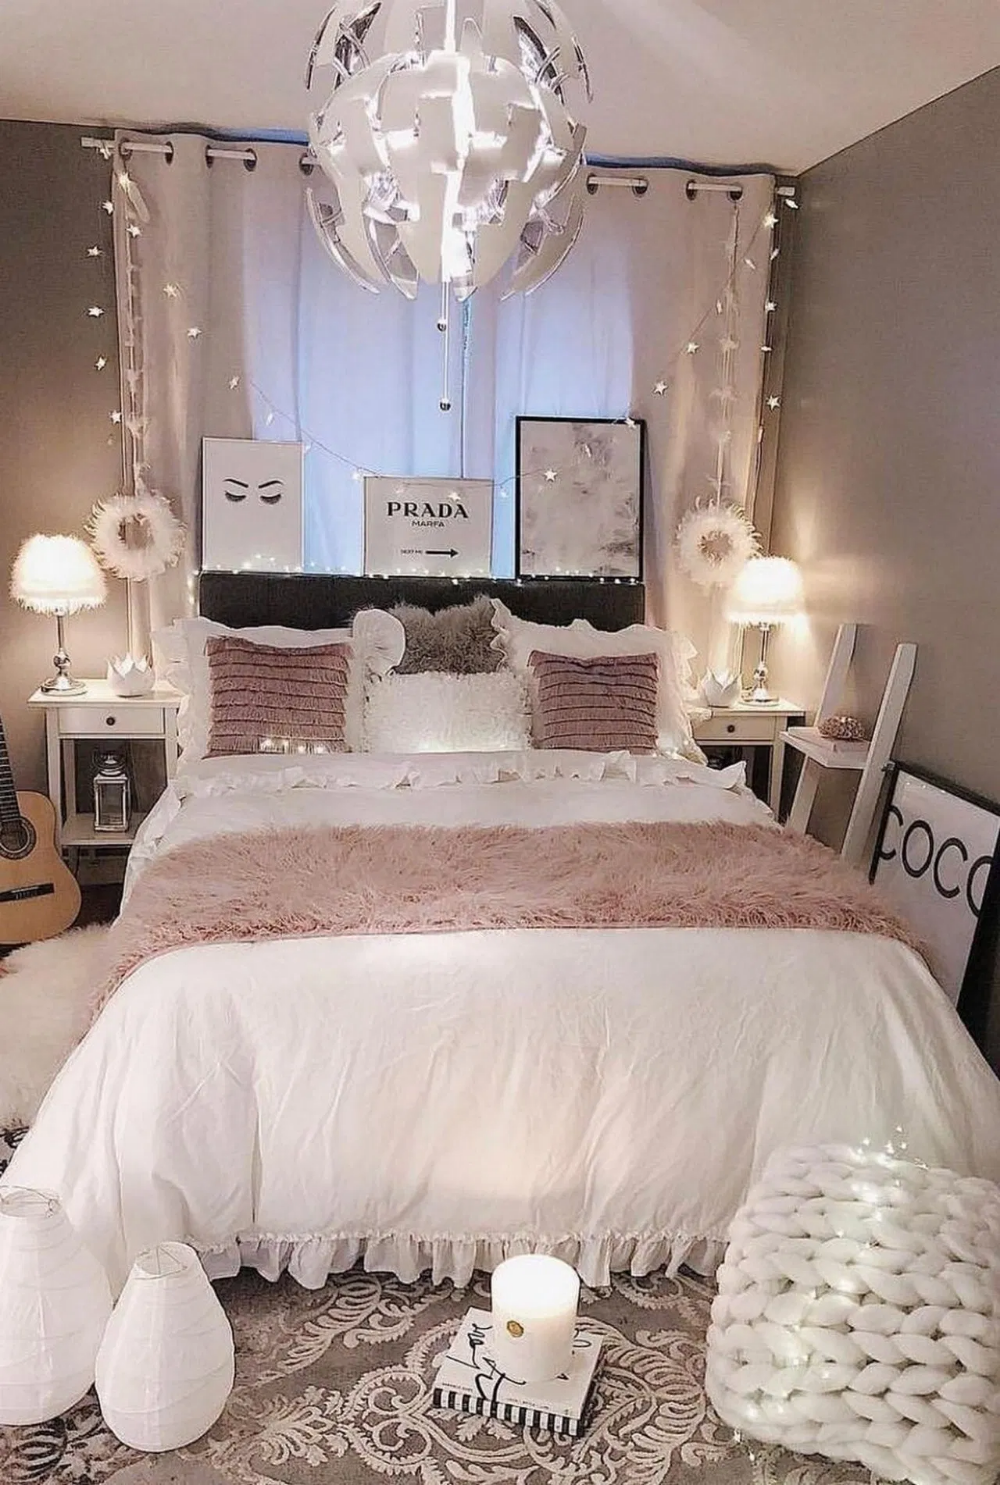 12 Small Bedroom Ideas That Are Look Stylishly 12 Small Room Bedroom Bedroom Decor Bedroom Design